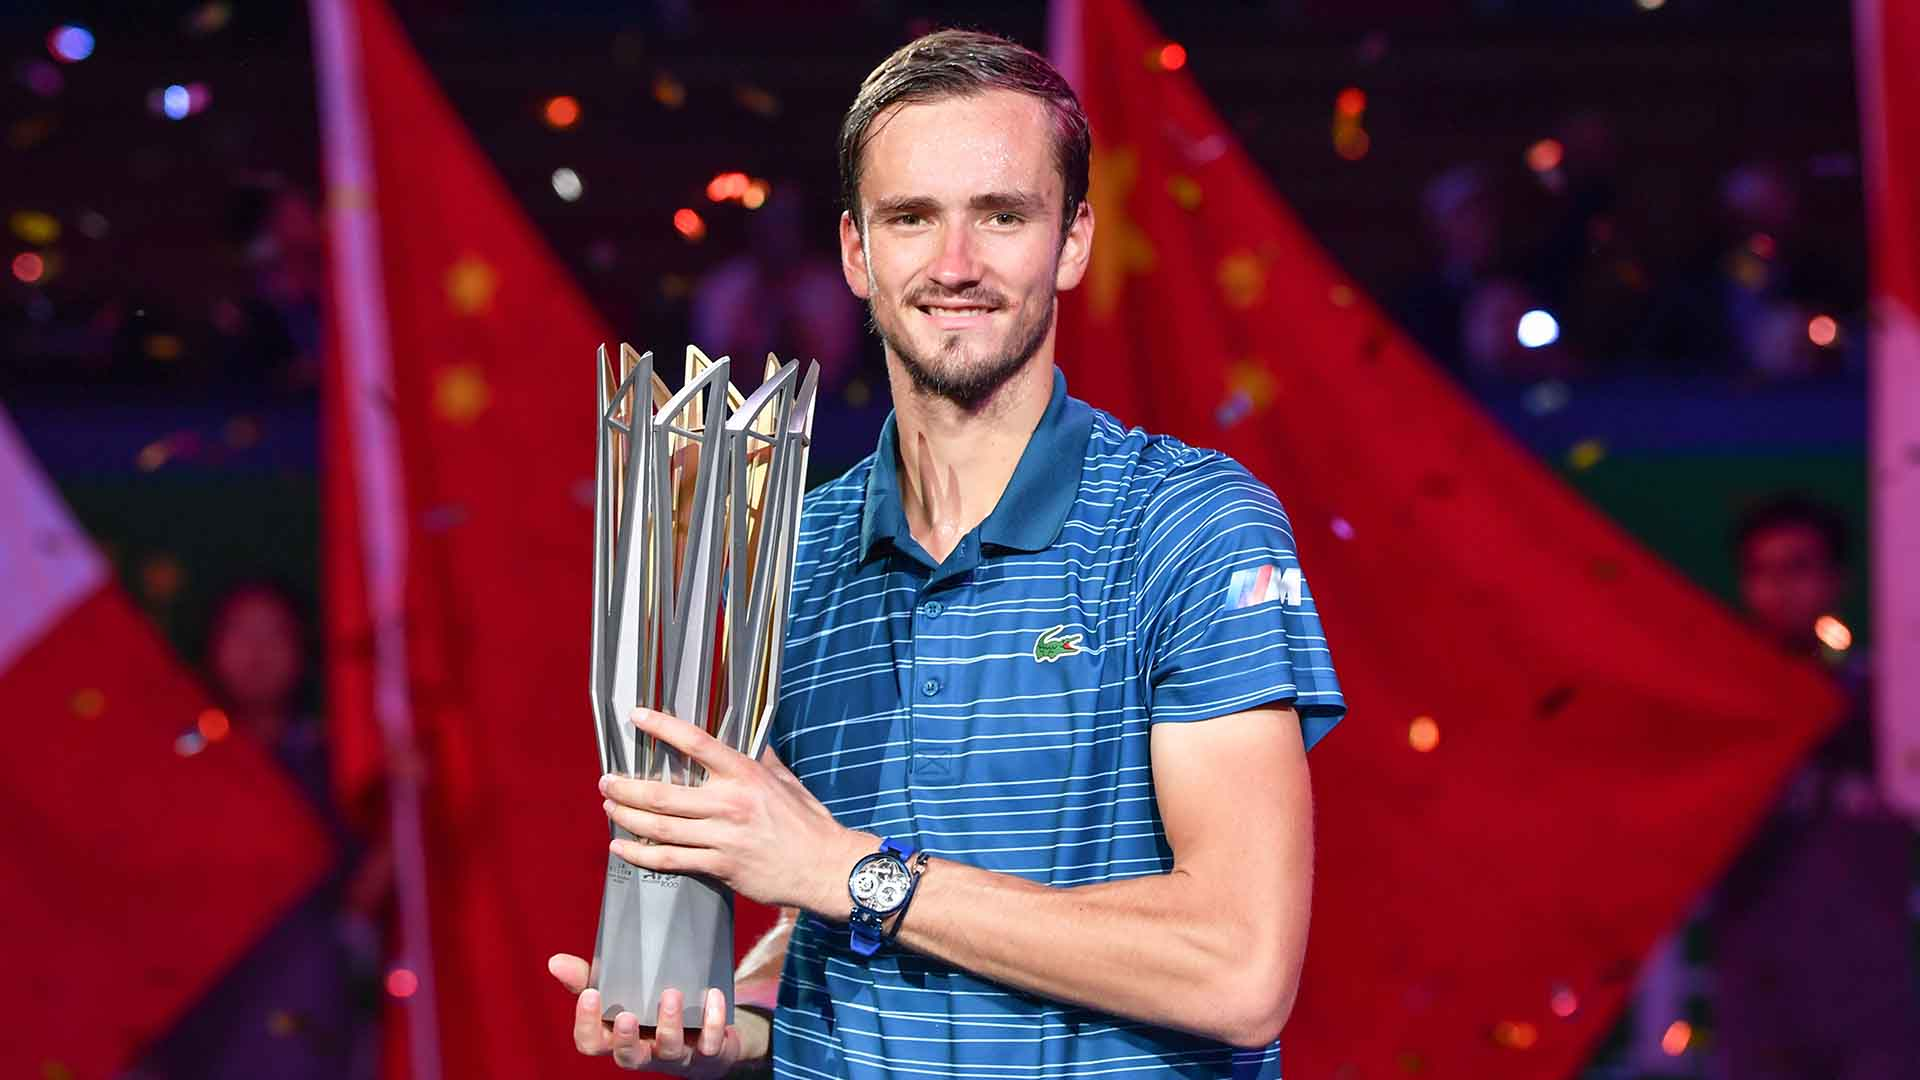 Daniil Medvedev owns a 59-17 tour-level record this year.